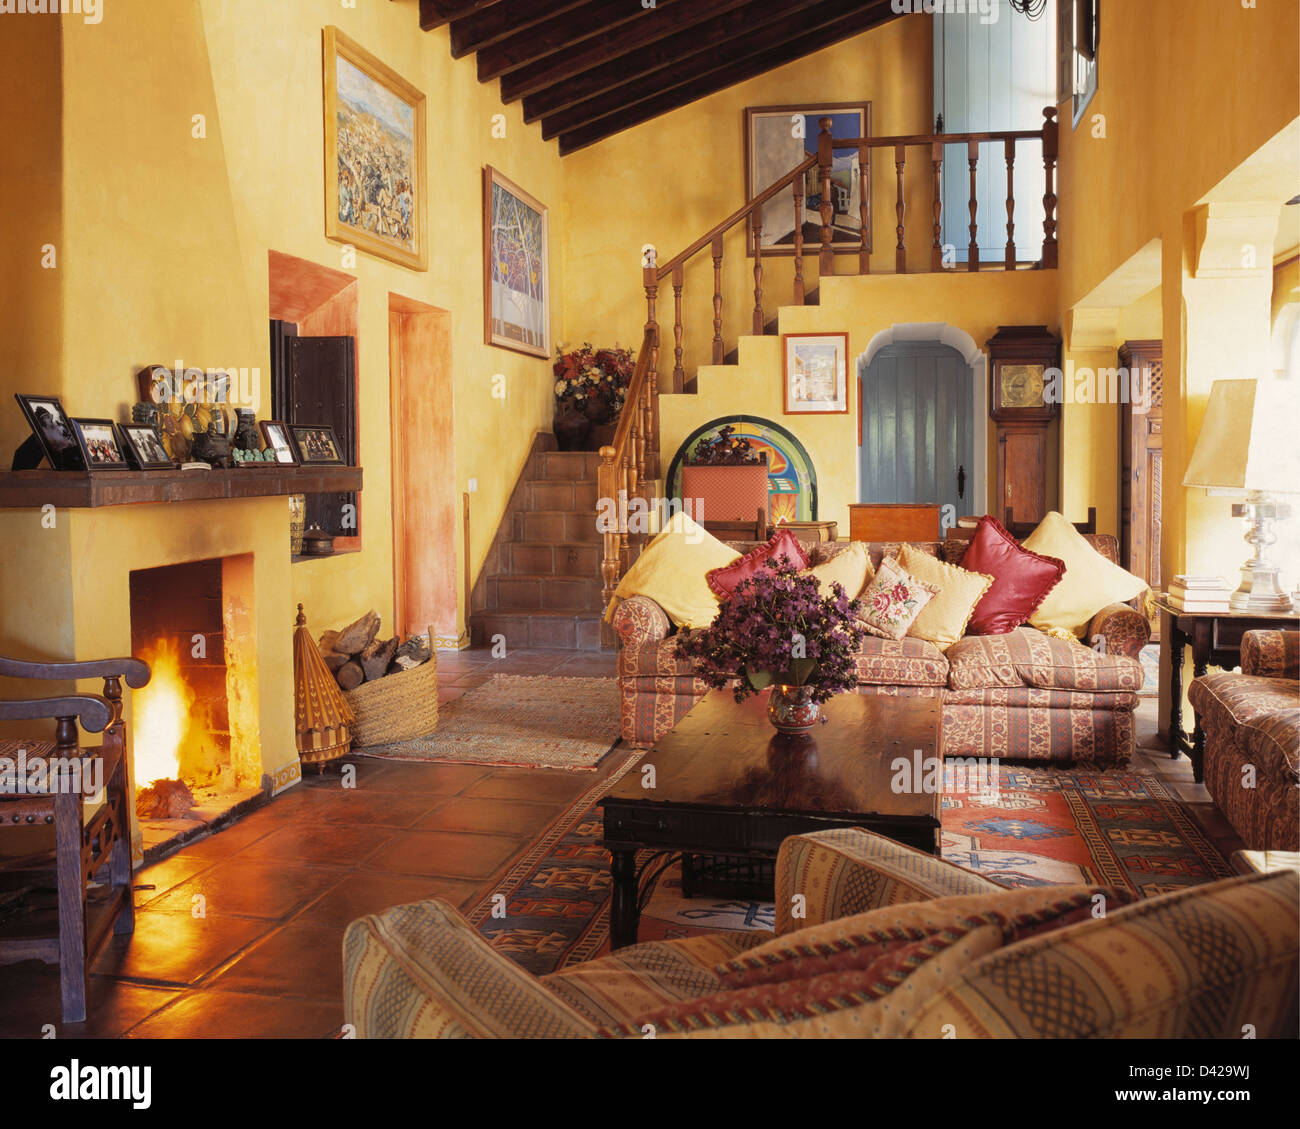 Living Room Spanish Amazing Comfortable Sofas In Yellow Living Room With Lighted Fire In Stock Design Decoration